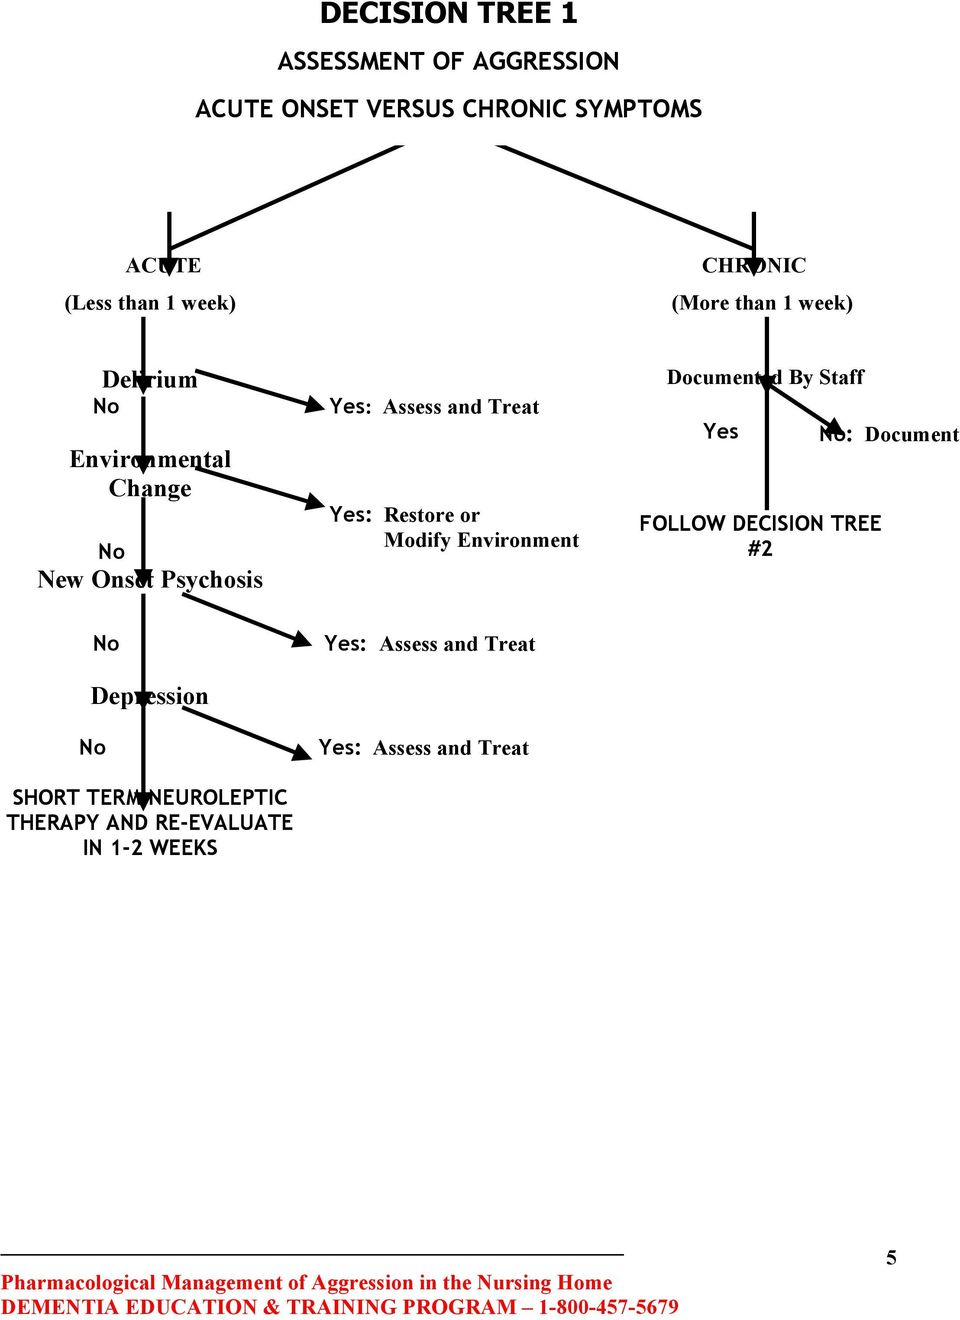 Environmental Change New Onset Psychosis Yes: Restore or Modify Environment FOLLOW DECISION TREE #2